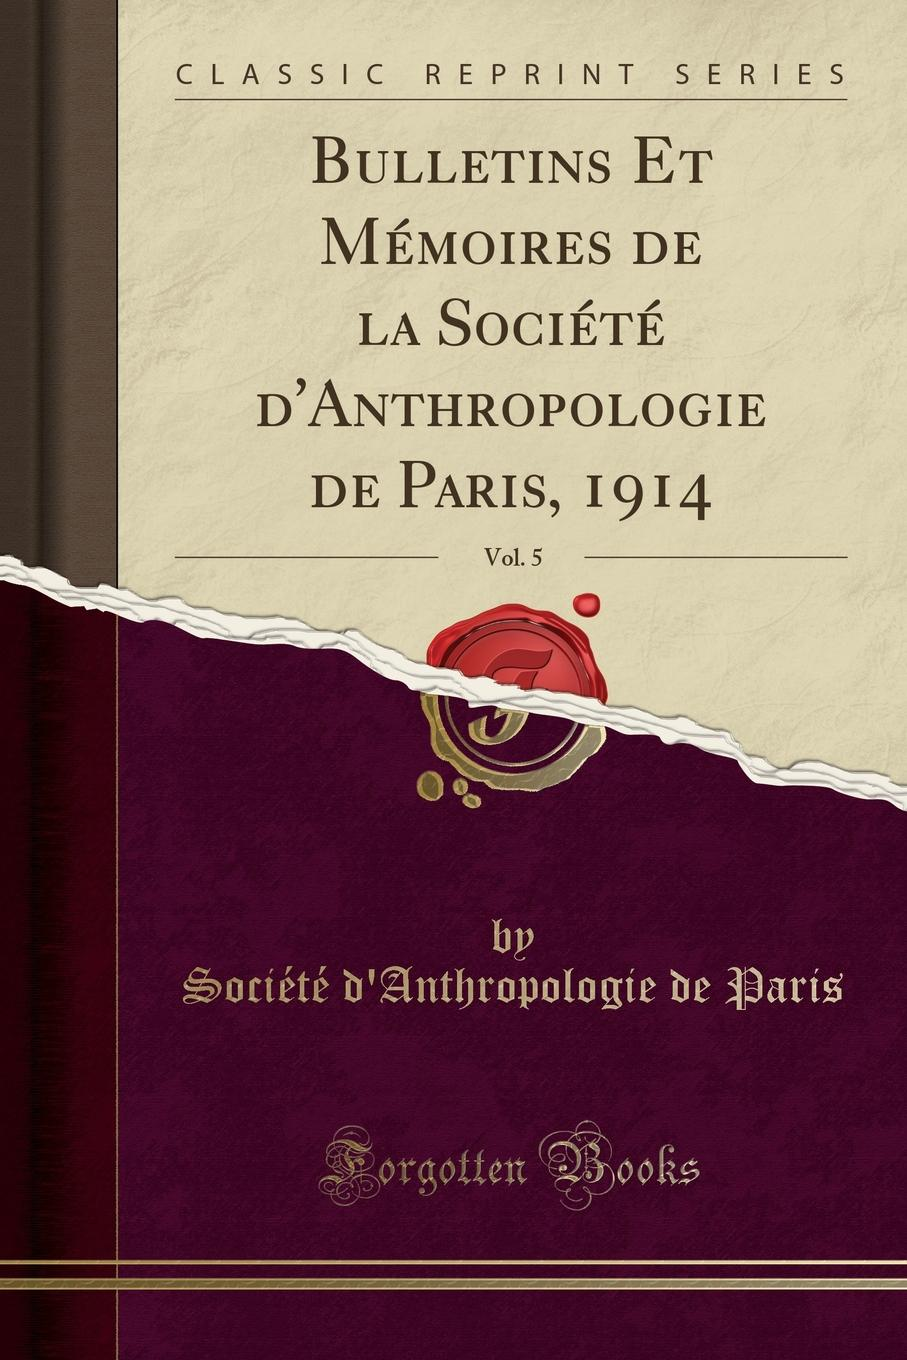 Société d'Anthropologie de Paris Bulletins Et Memoires de la Societe d.Anthropologie de Paris, 1914, Vol. 5 (Classic Reprint)